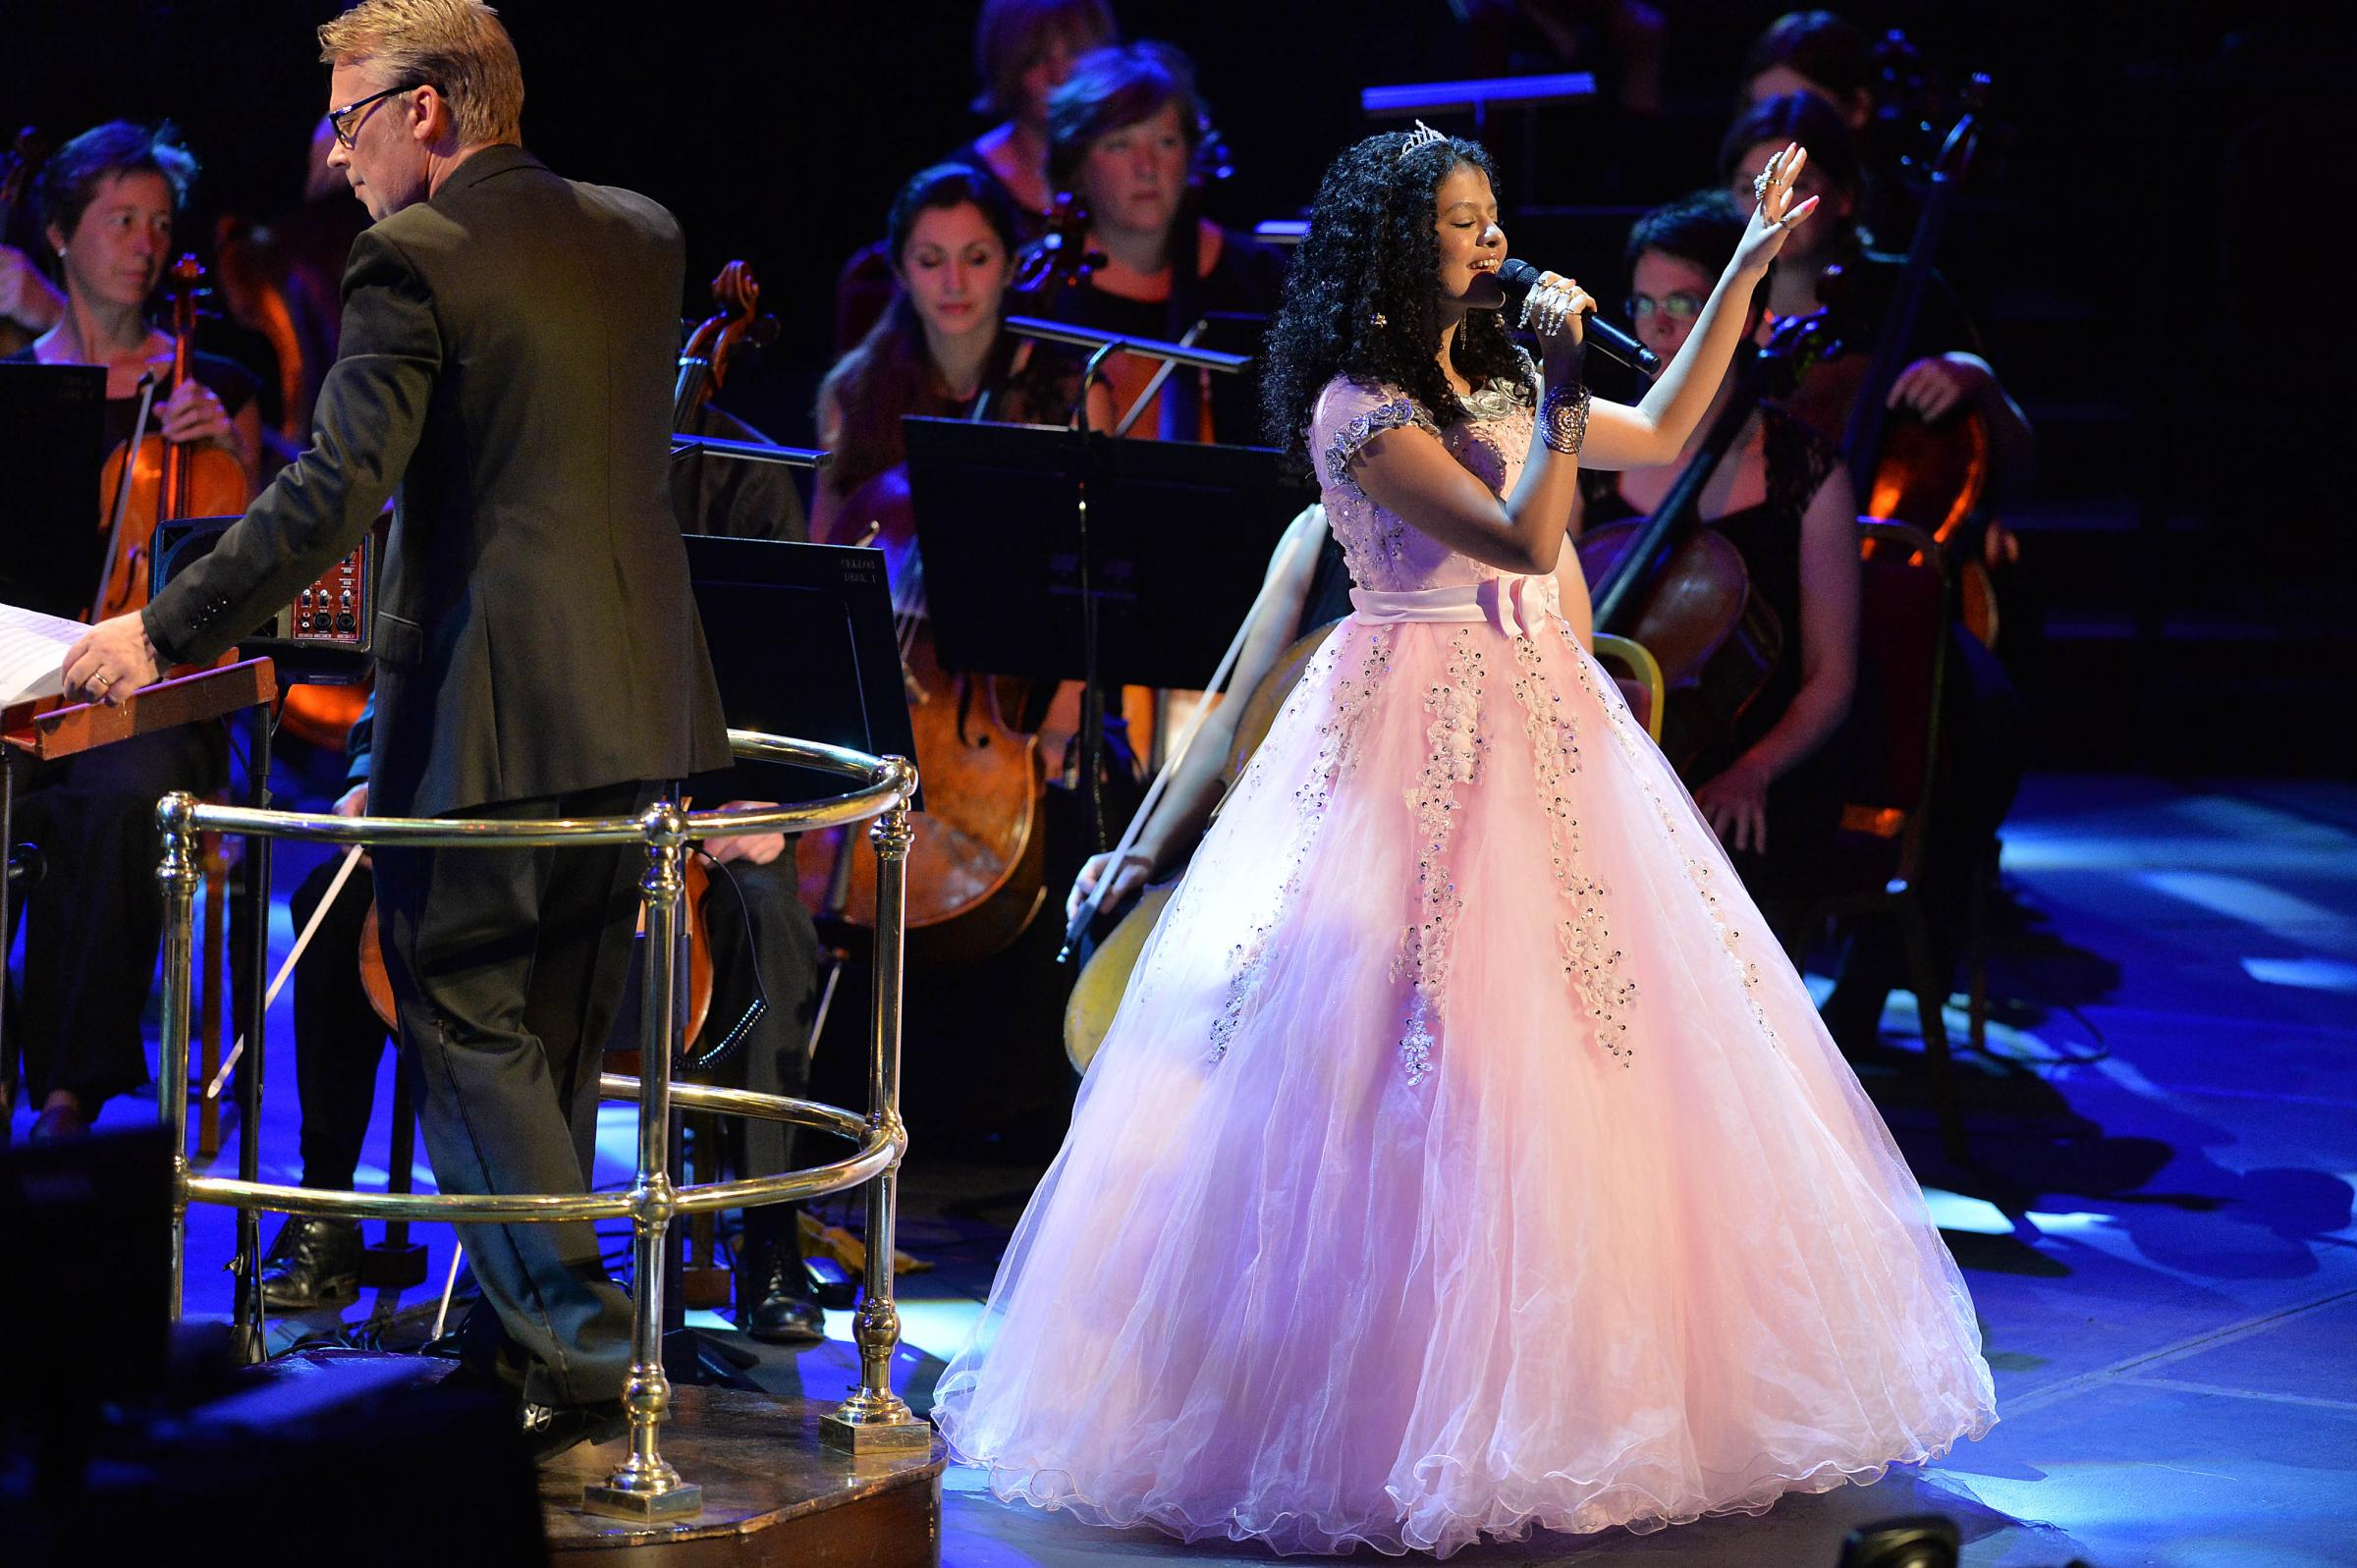 WATCH: Benny Dayal and Palak Muchhal perform at BBC Proms